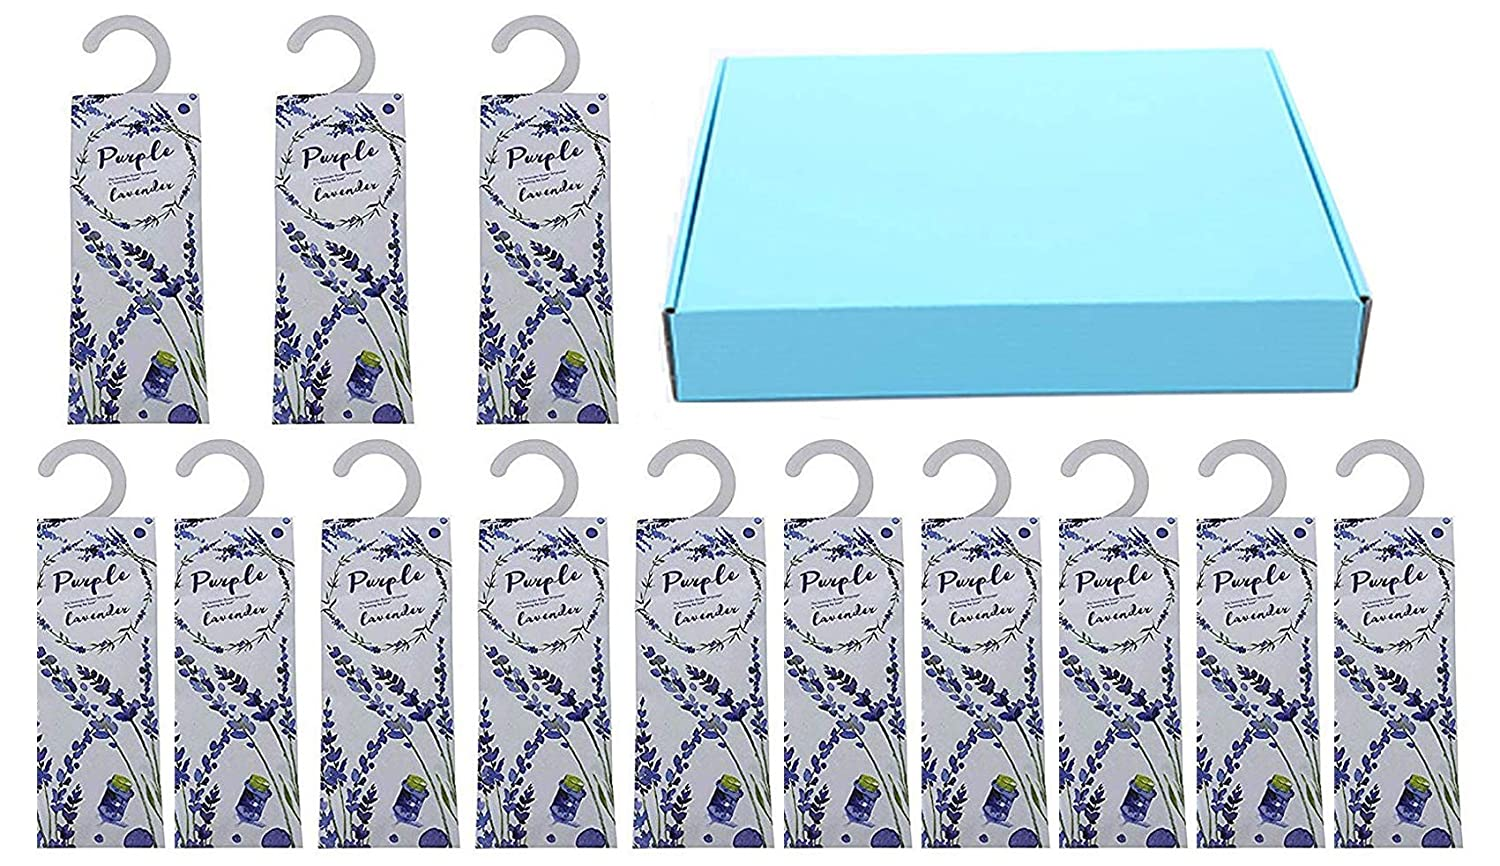 13 Packs Lavender Sachets Drawer and Closet Best Gift Anianiau